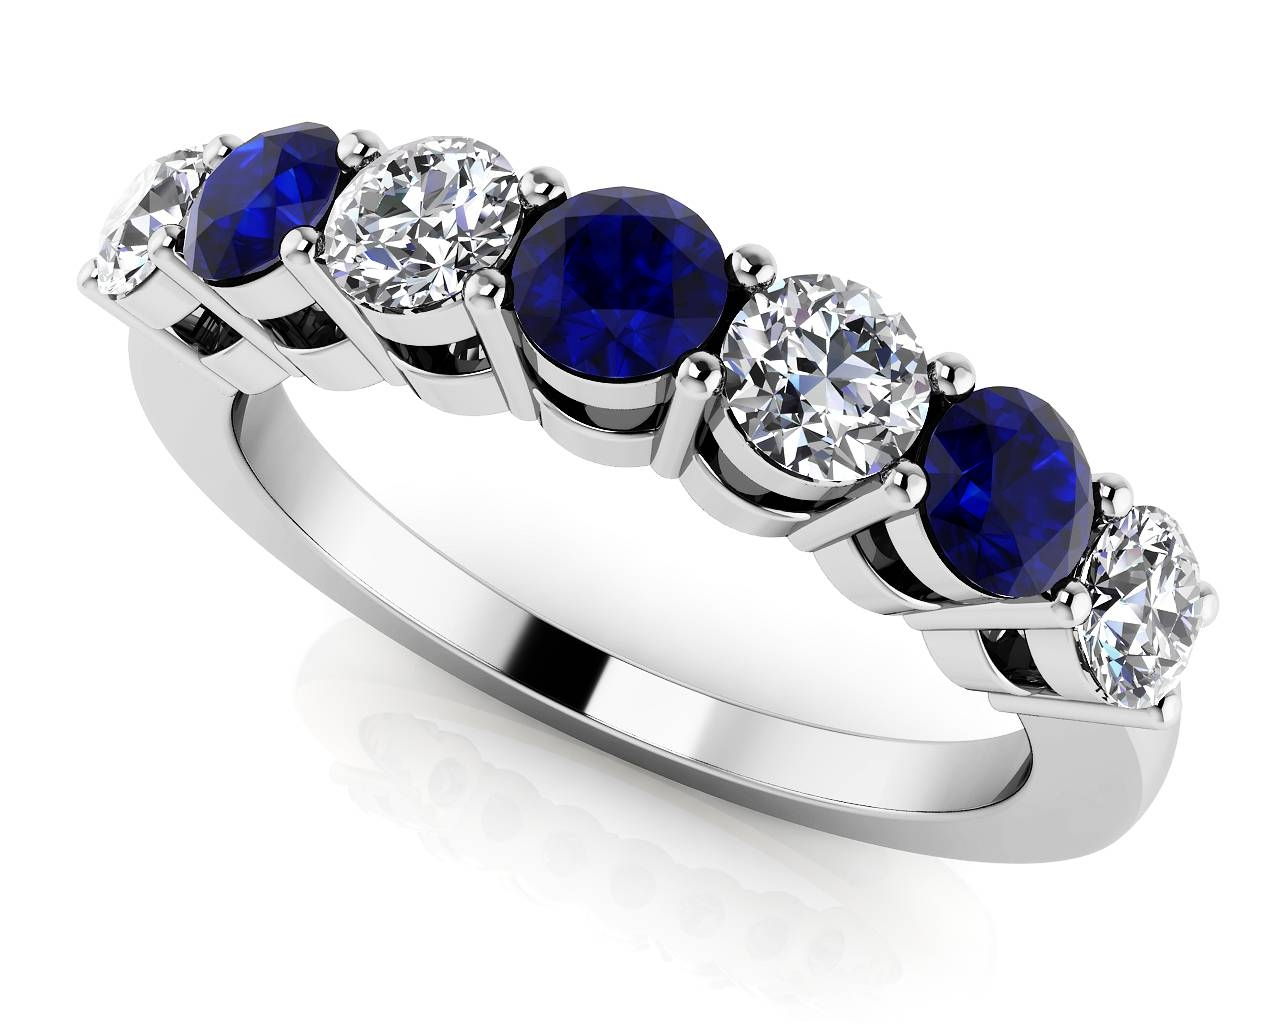 Design Your Own Diamond Anniversary Ring & Eternity Ring Pertaining To Most Up To Date Sapphire Anniversary Rings (View 7 of 25)